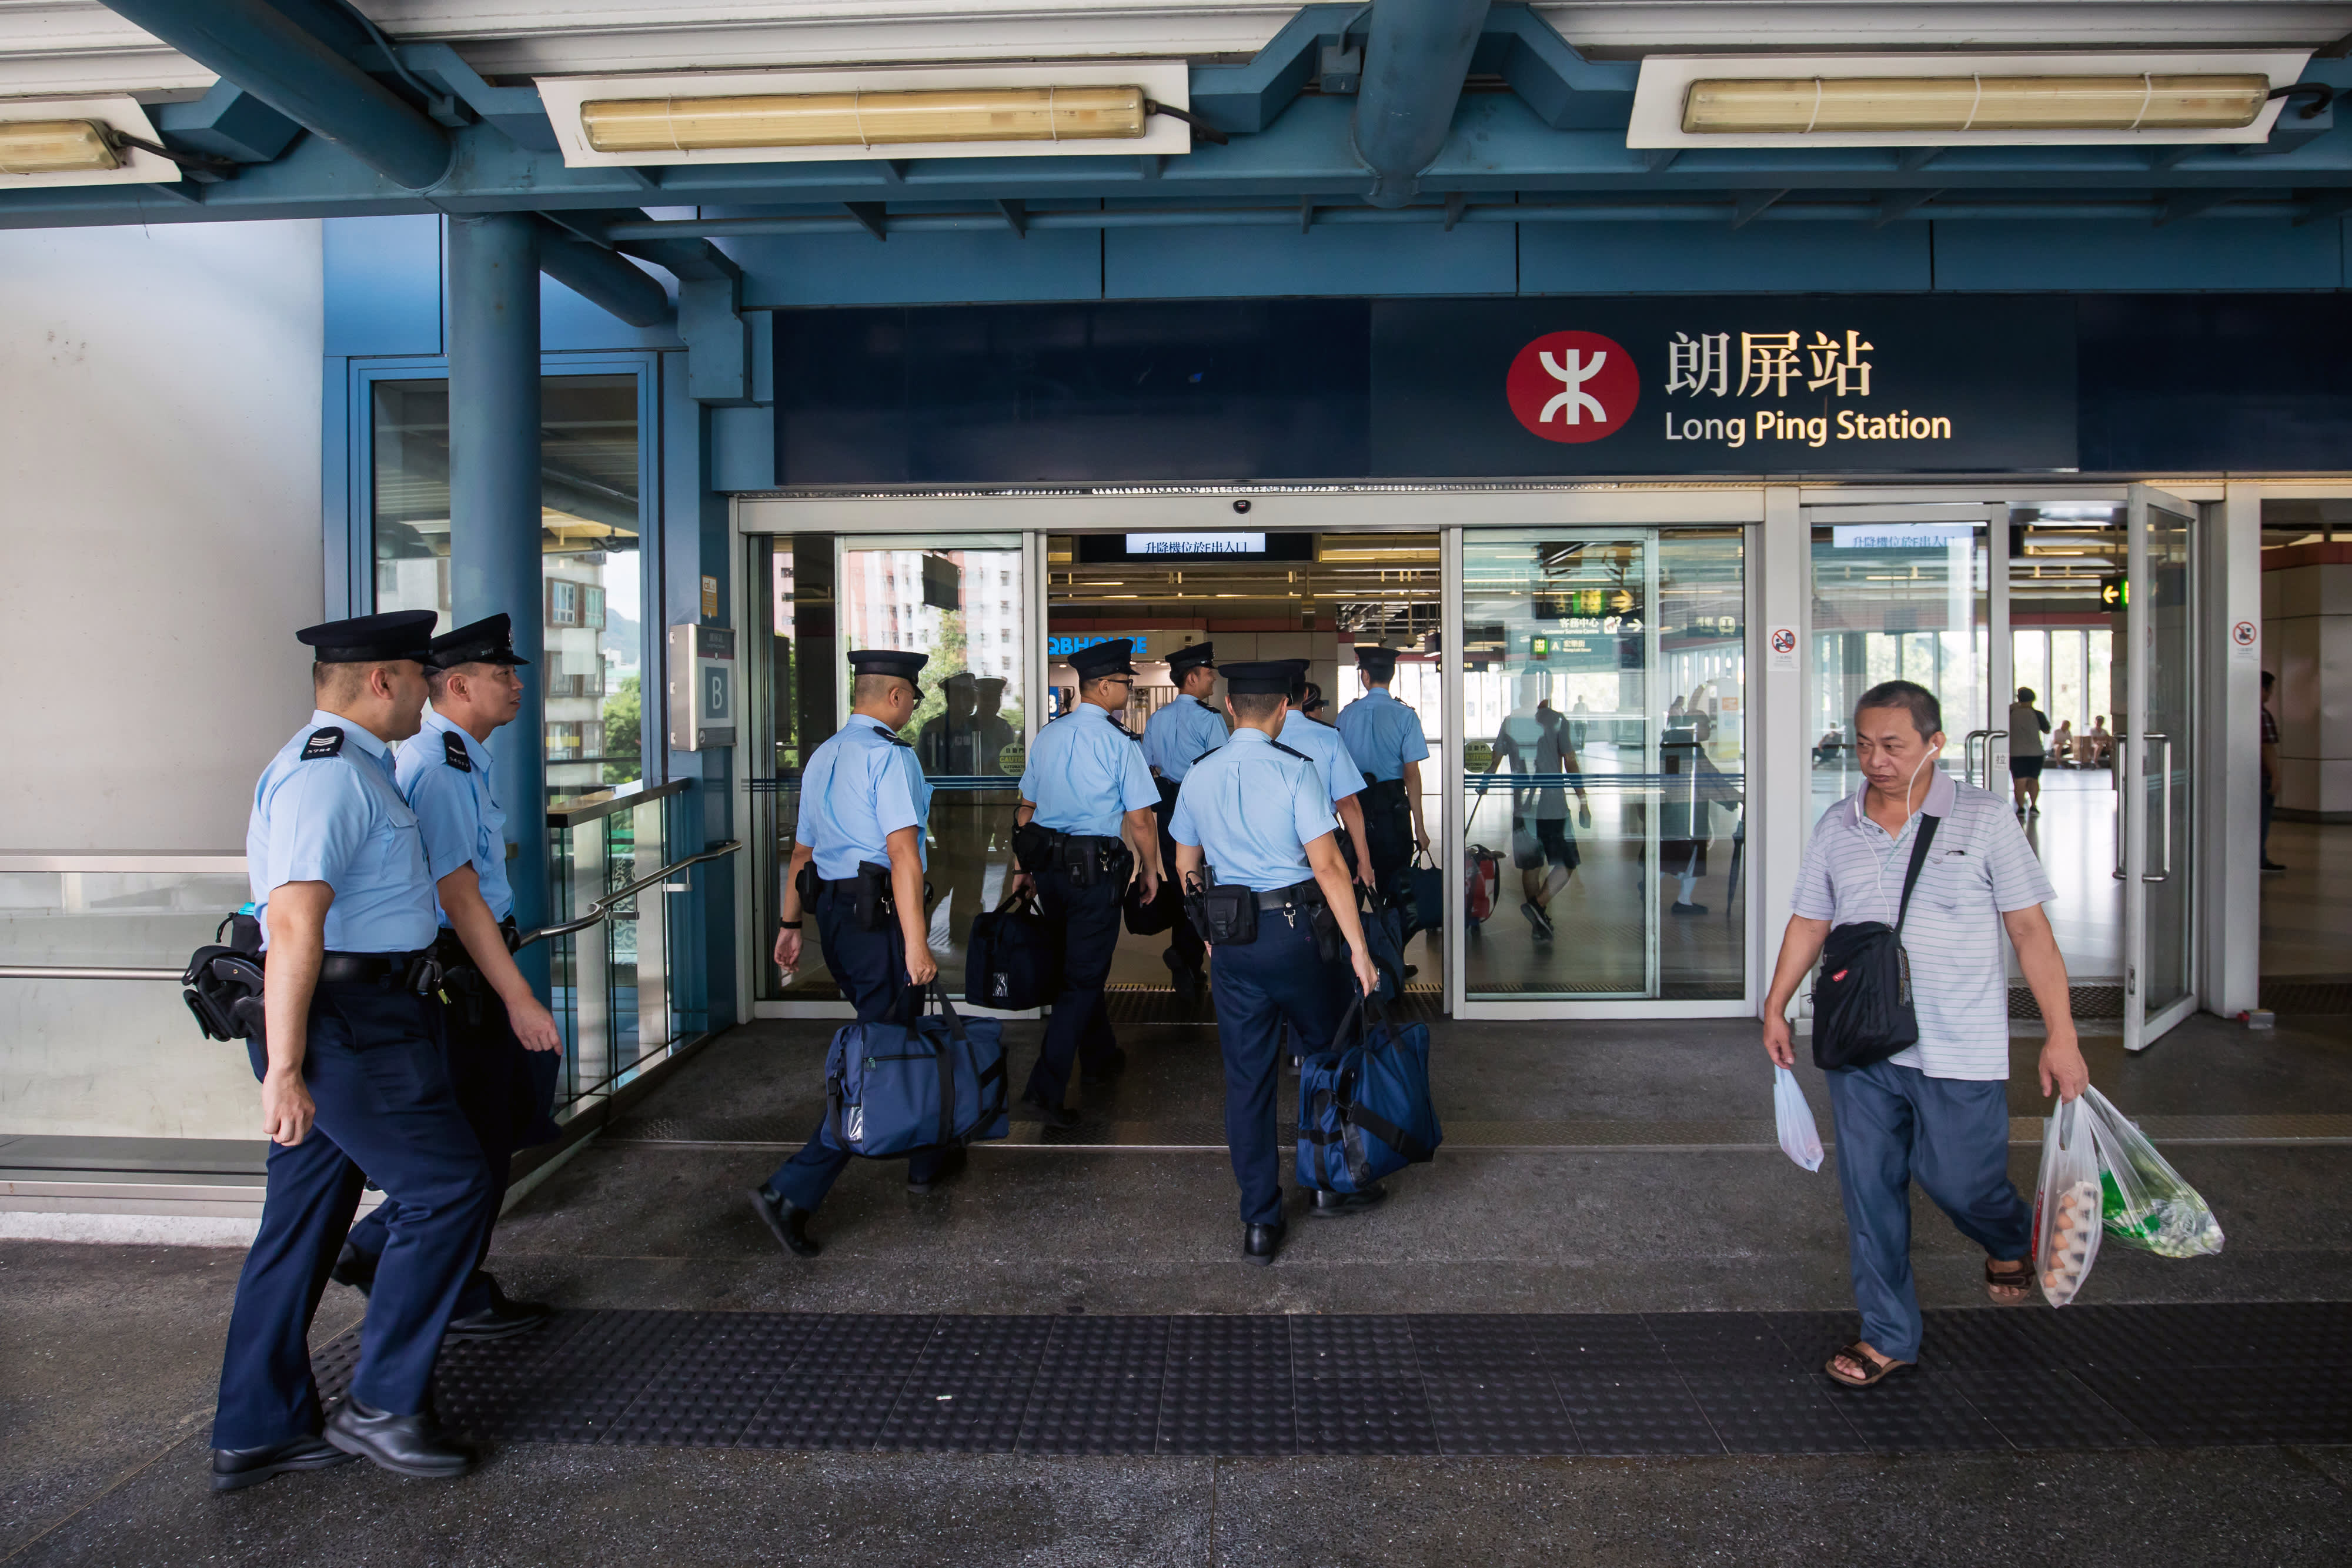 Trouble feared as Hong Kong activists return to scene of suspected triad attack